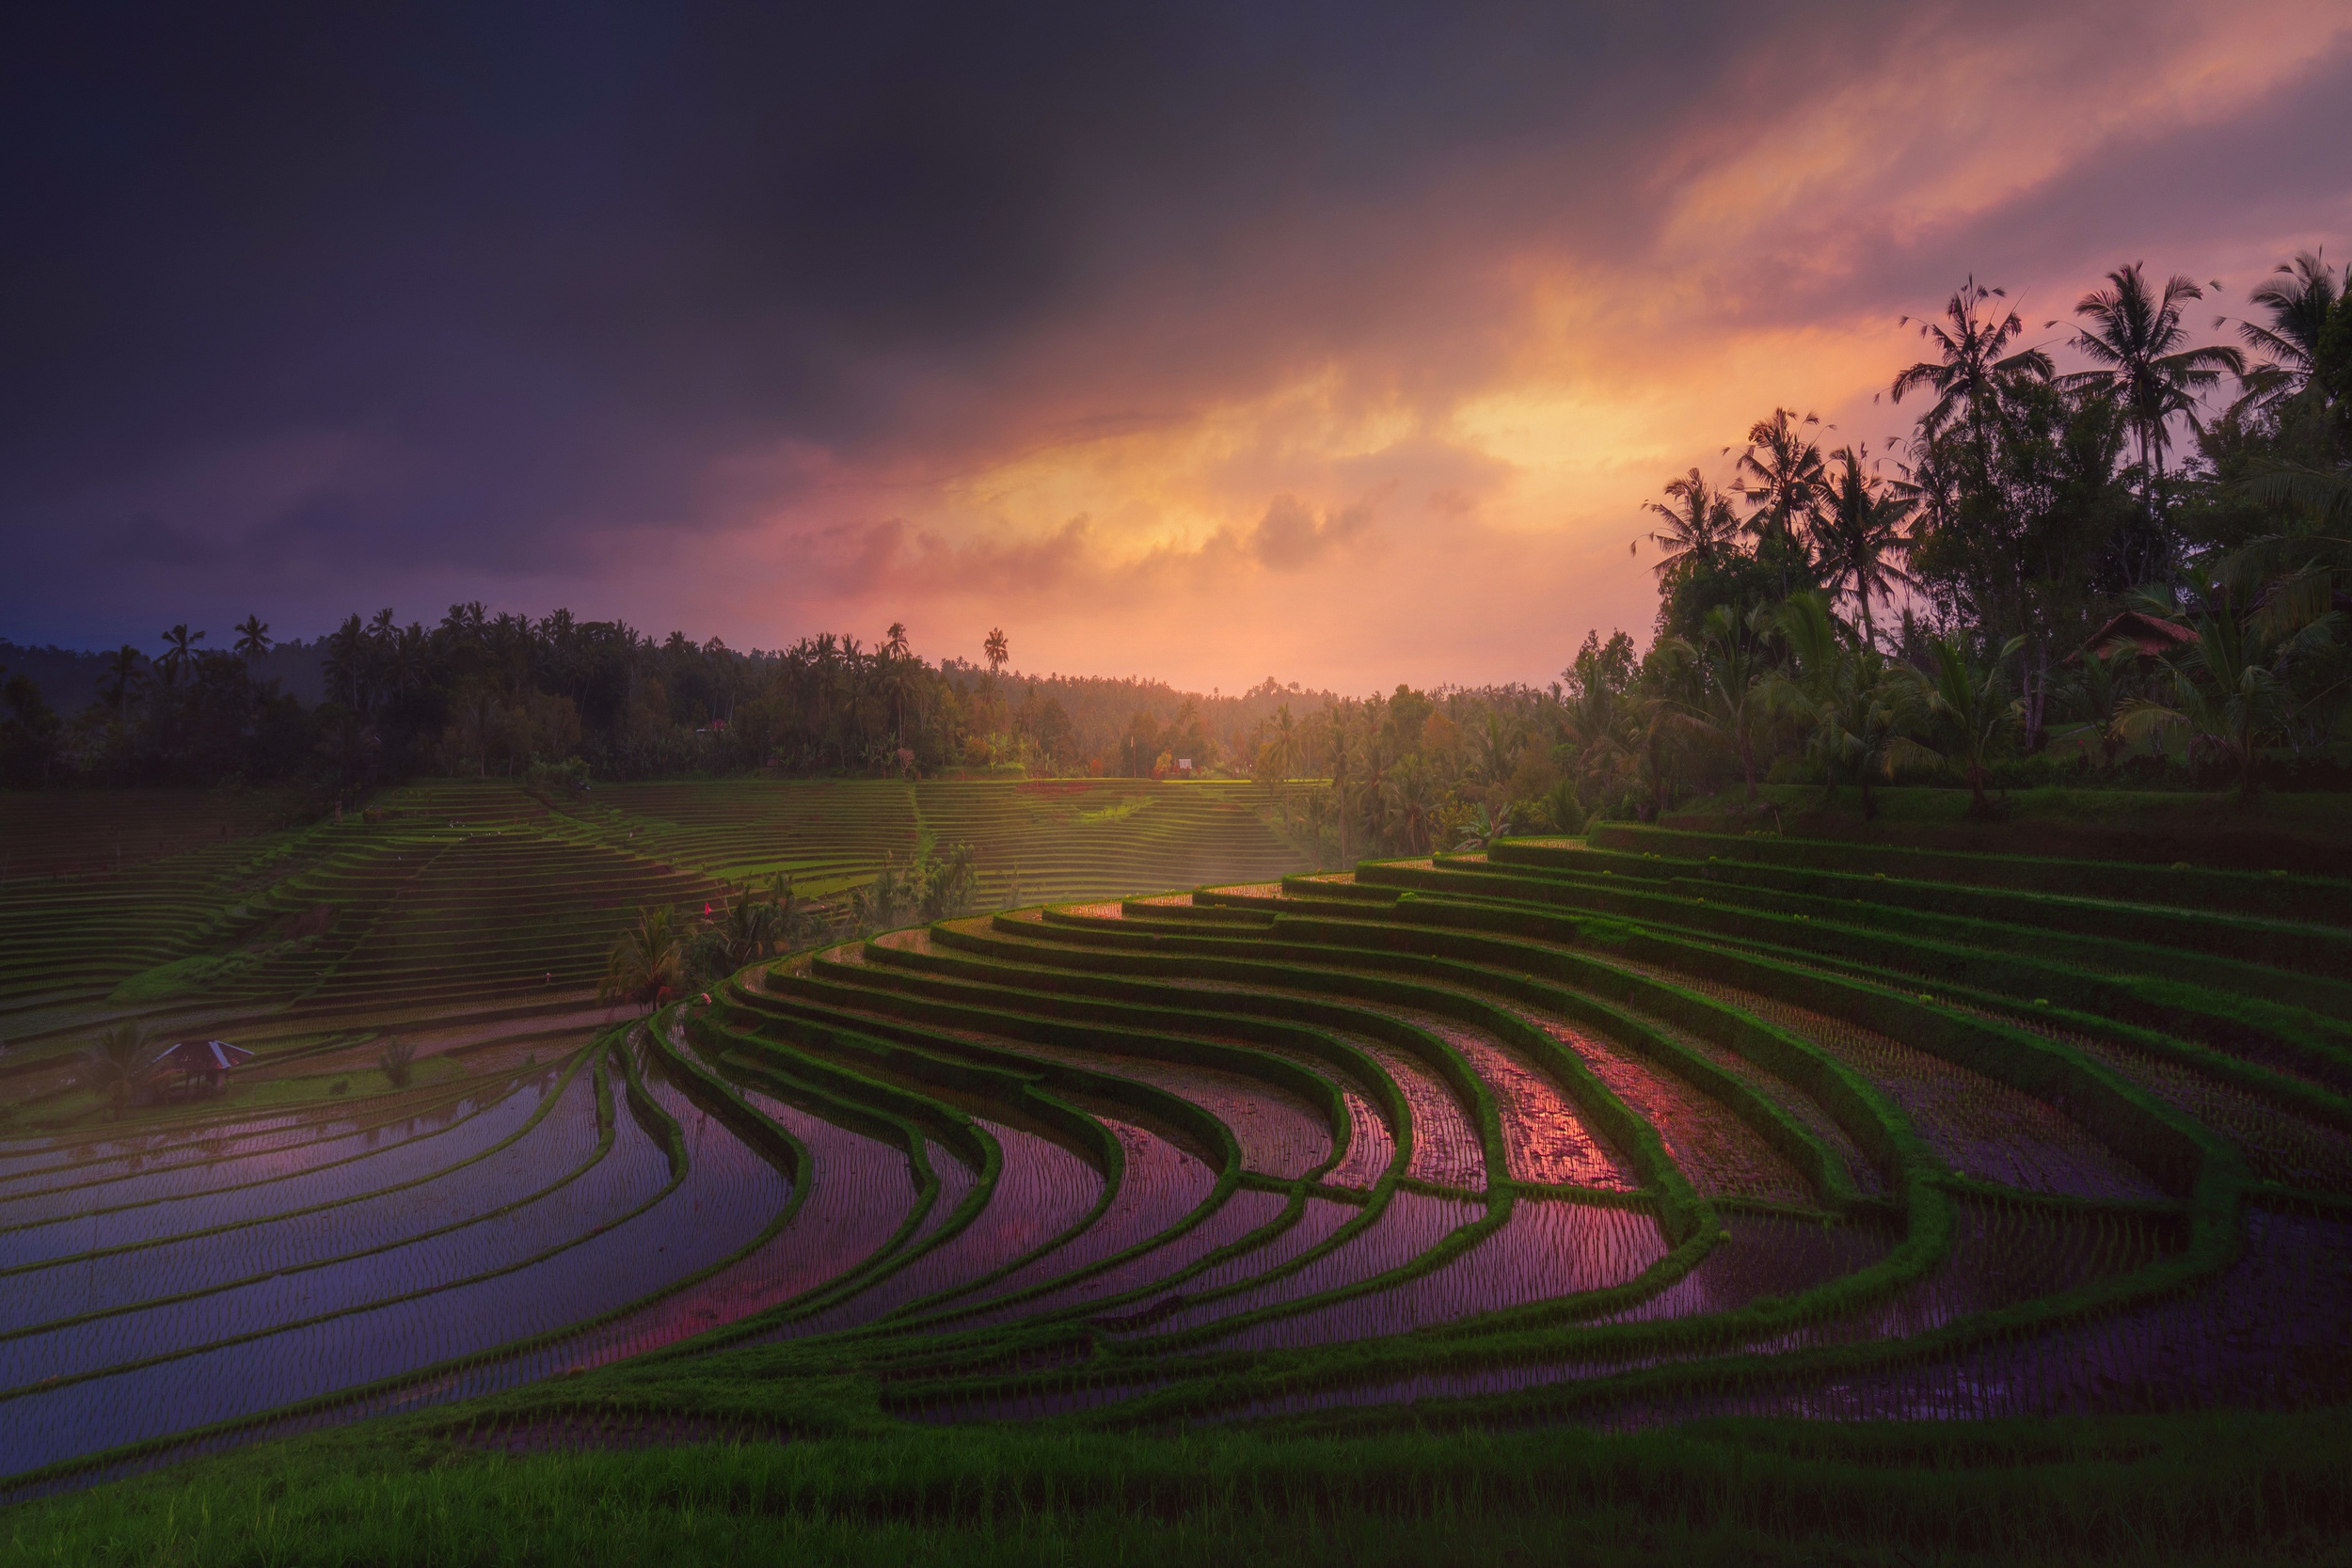 Nature rice terrace wallpaper 2500x1667 1206085 for Terrace nature